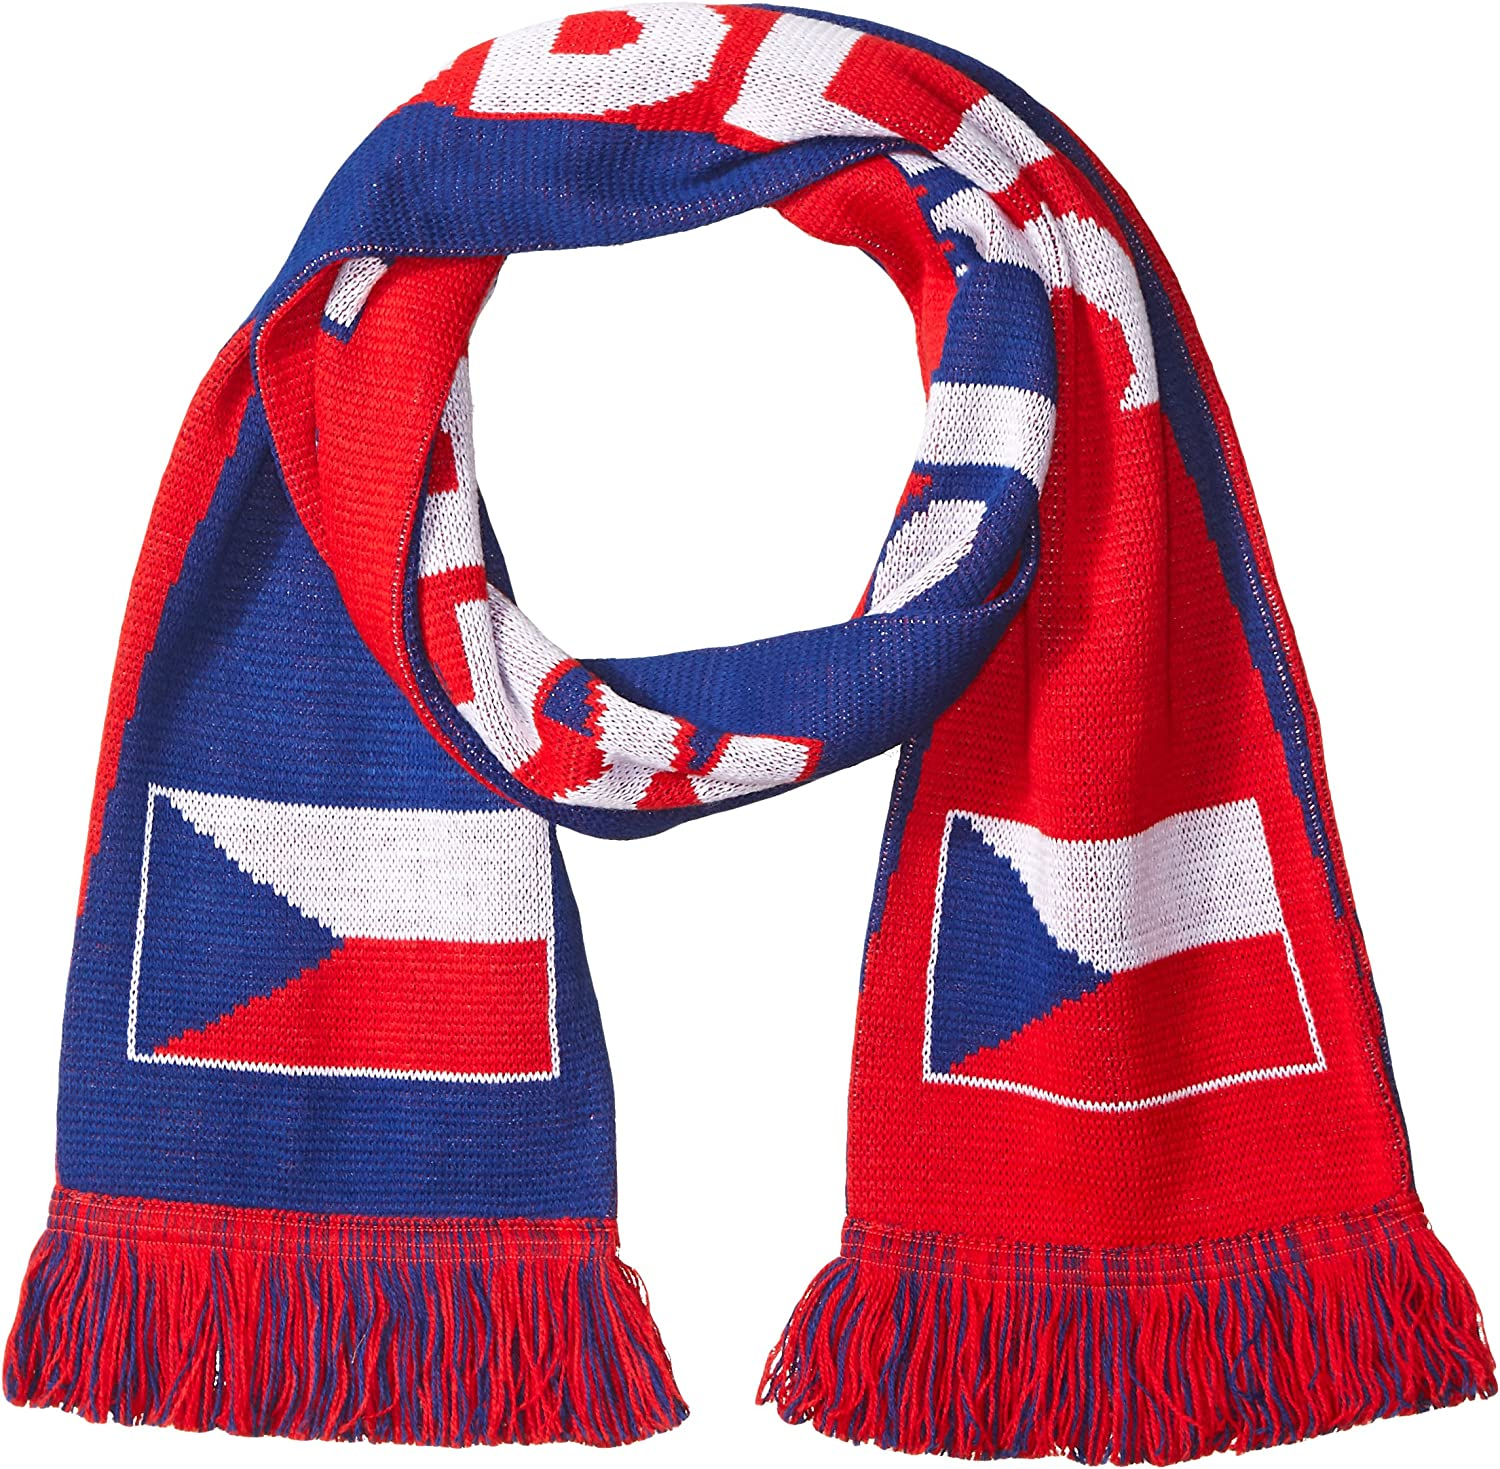 Czech Safety and trust Republic Scarf Cheap mail order specialty store